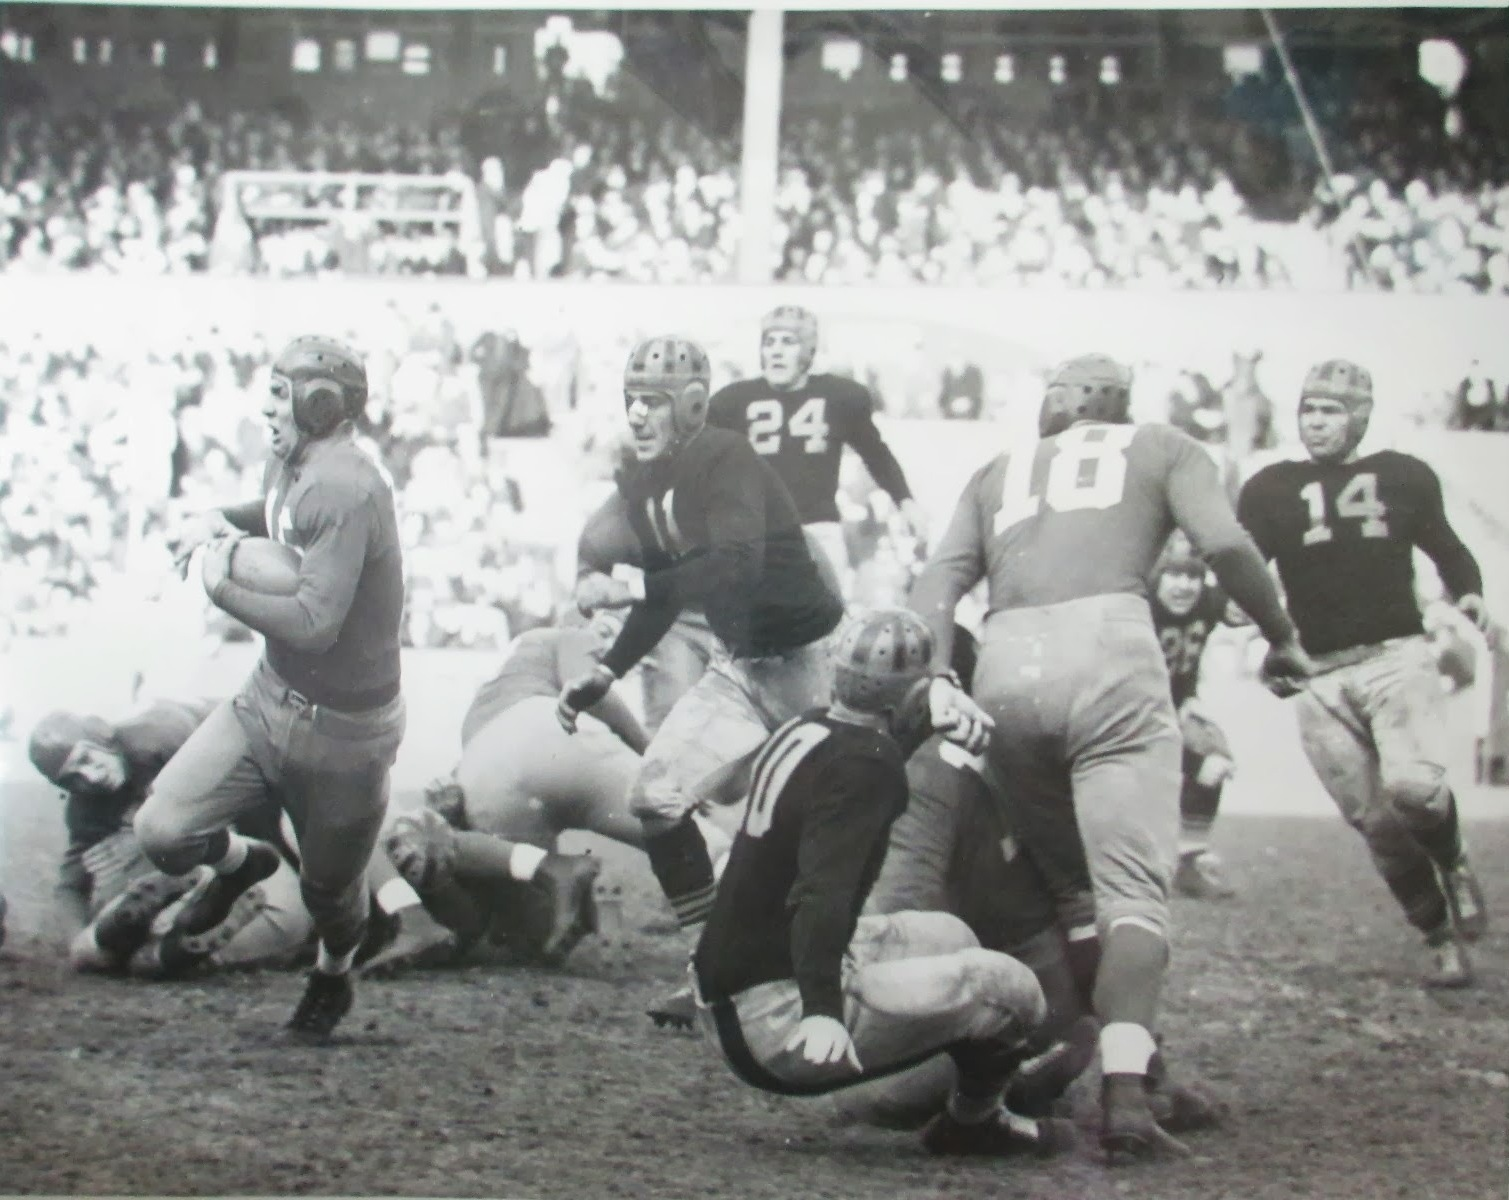 Hank Soar (with the ball), Pittsburgh Football Pirates at New York Football Giants (November 7, 1937)